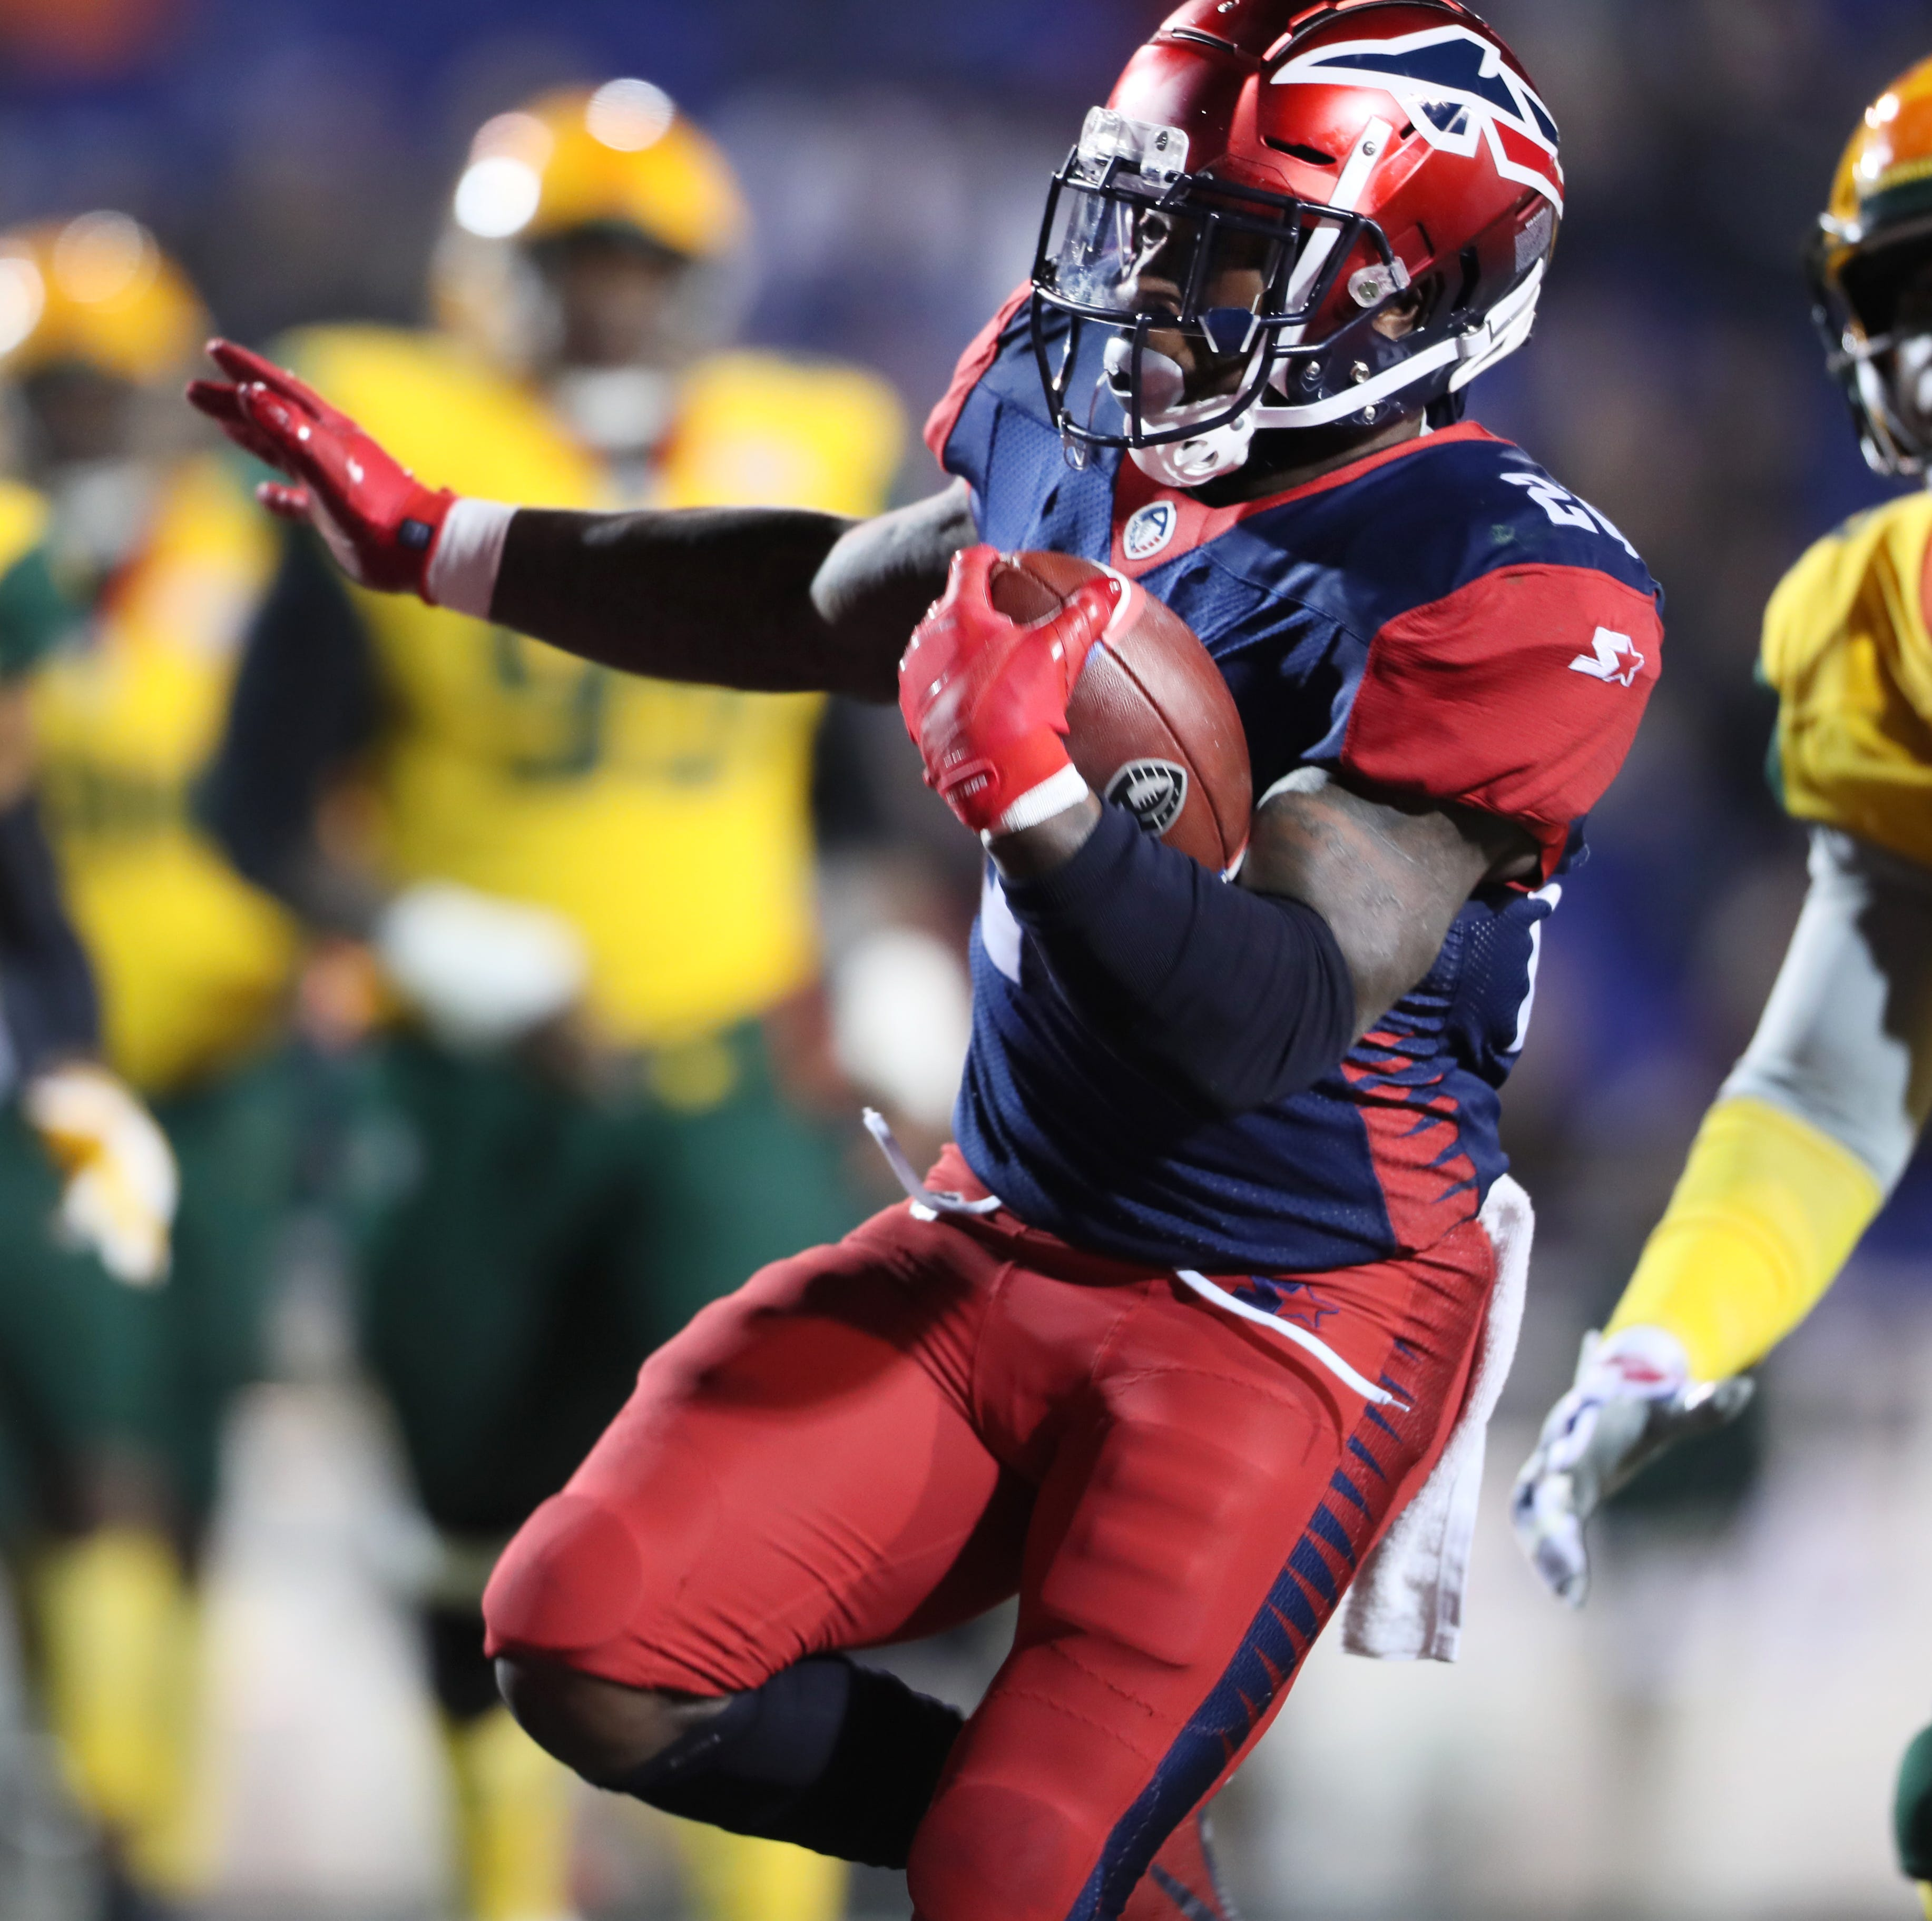 AAF: Memphis Express sees double-digit fourth-quarter lead evaporate in 2nd straight loss